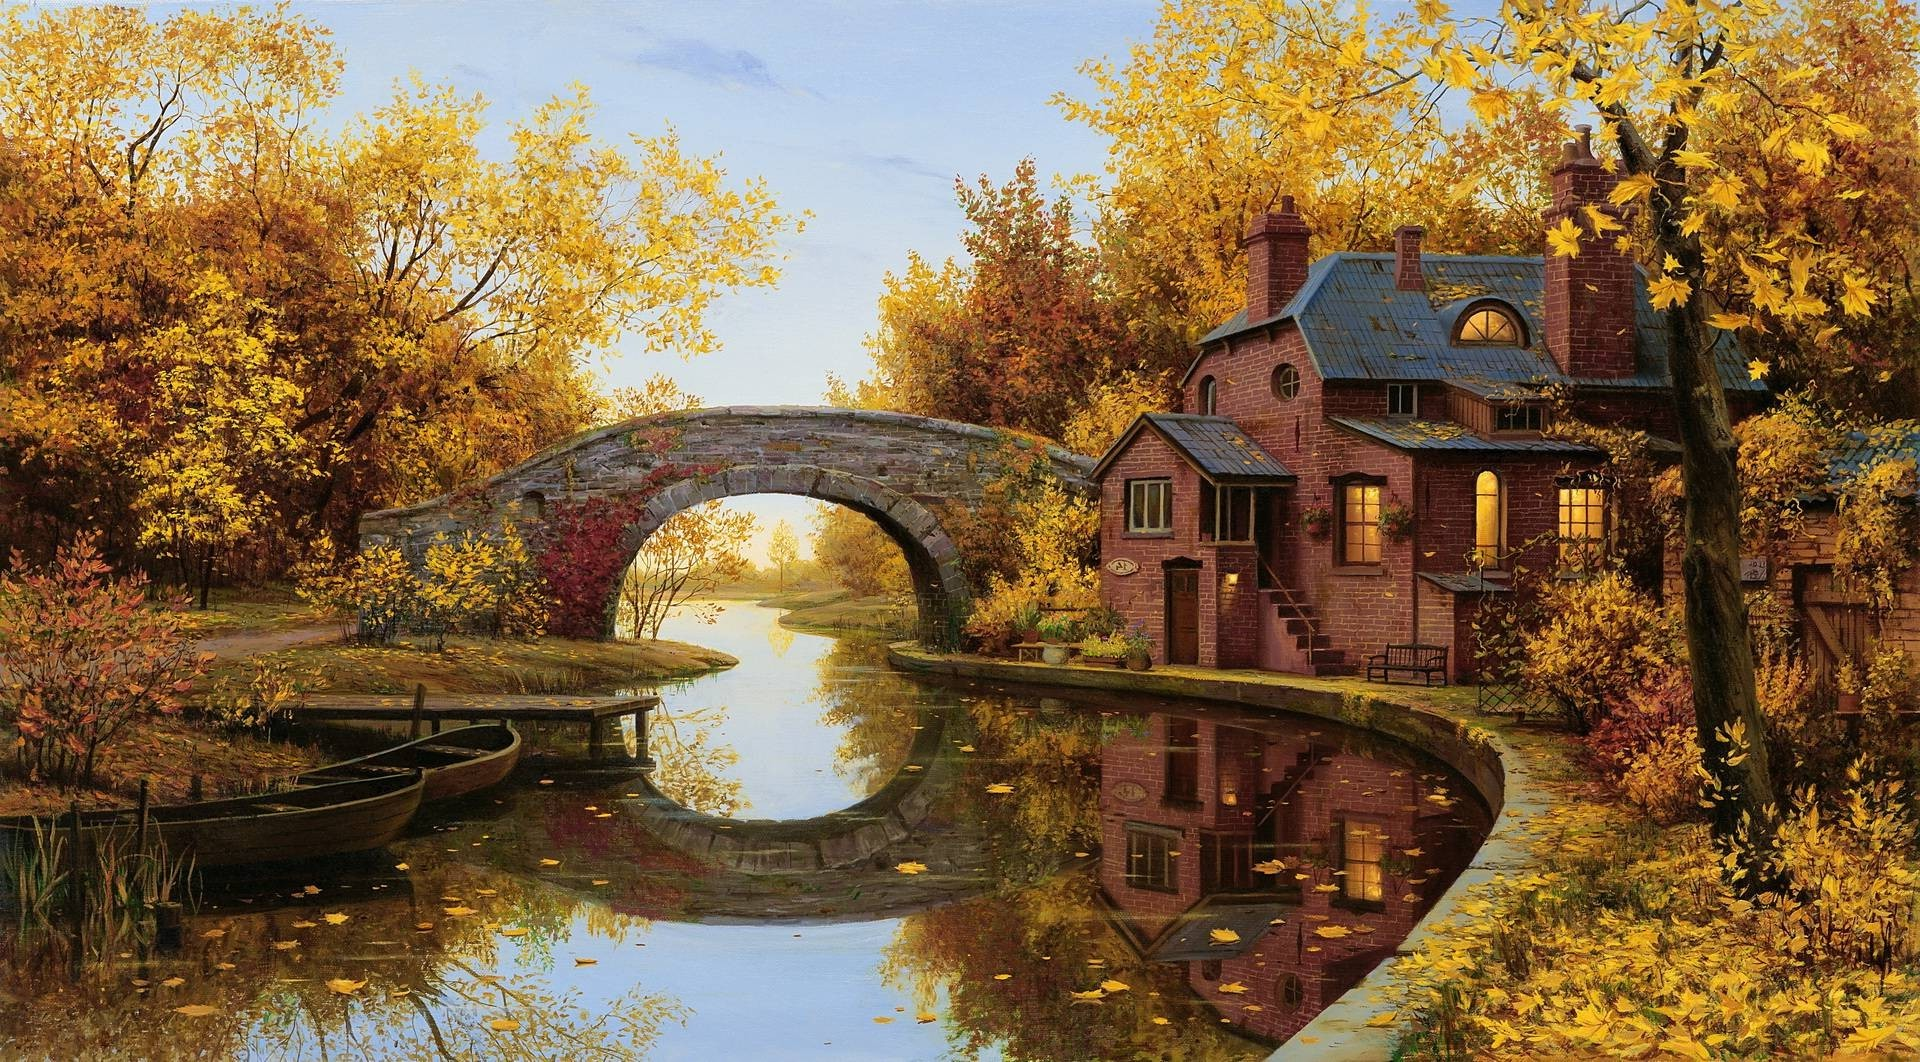 Reflection Bridge Arch River House Trees Boat Fall